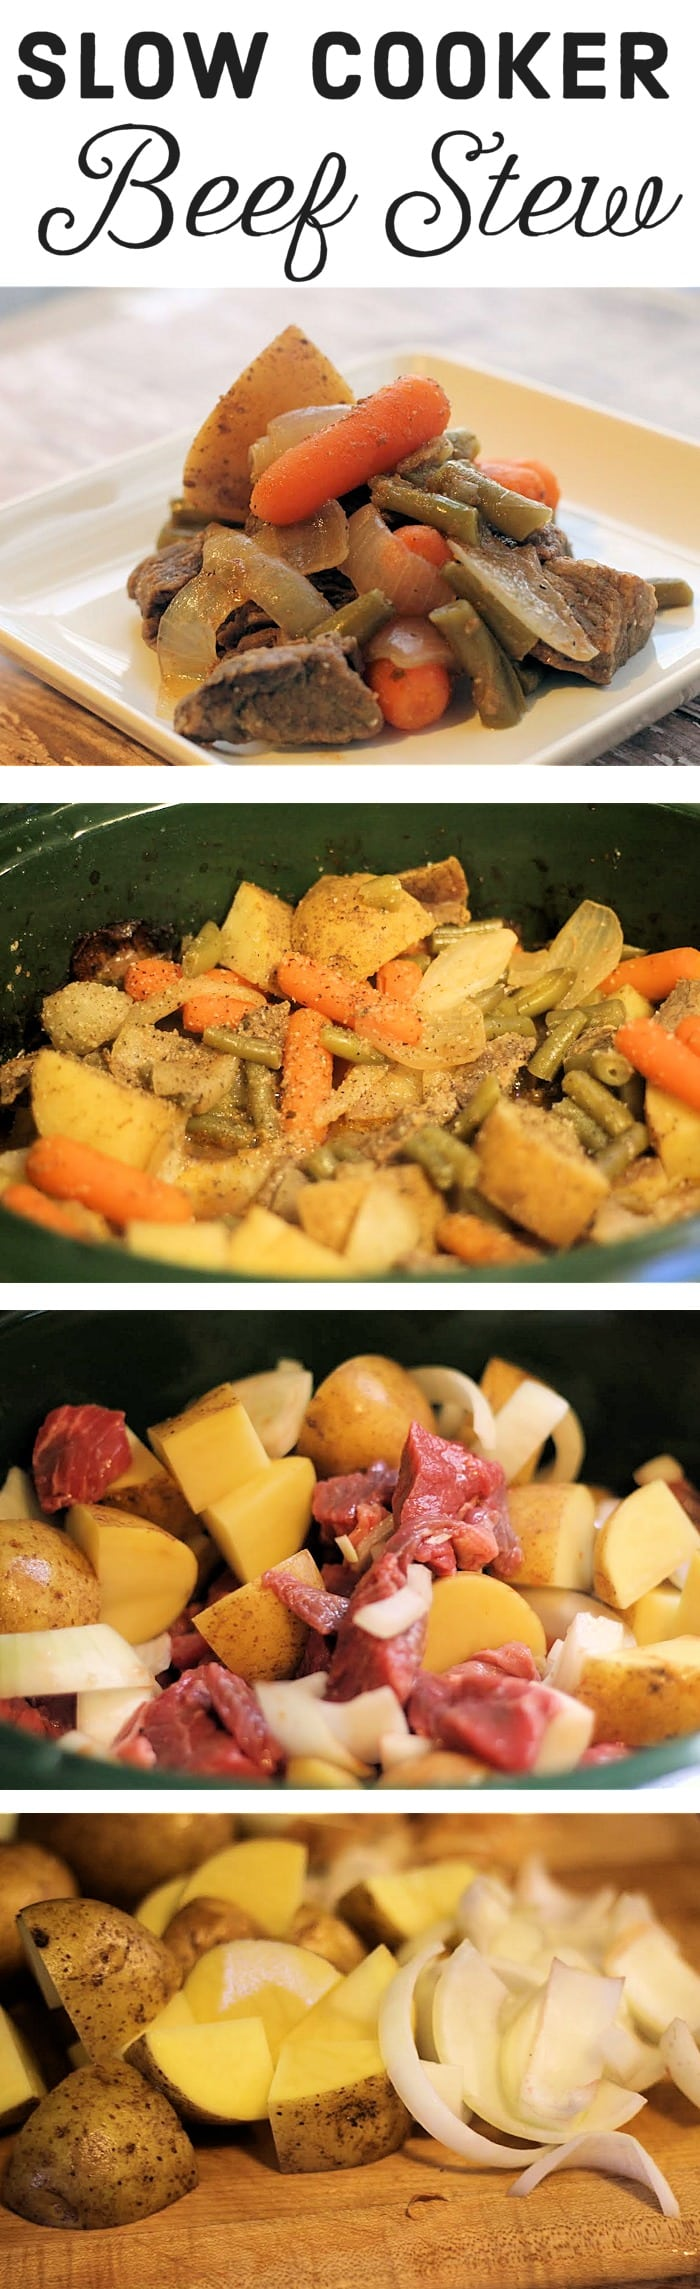 Slow Cooker Beef Stew Recipe - Need a hearty and delicious meal to fill your family's bellies? This slow cooker beef stew recipe is a blend of flavorful stew meat and vegetables. The seasonings seep into the meat and veggies while they cook over 7 to 8 hours leaving you with a rich and filling meal that everyone will love.